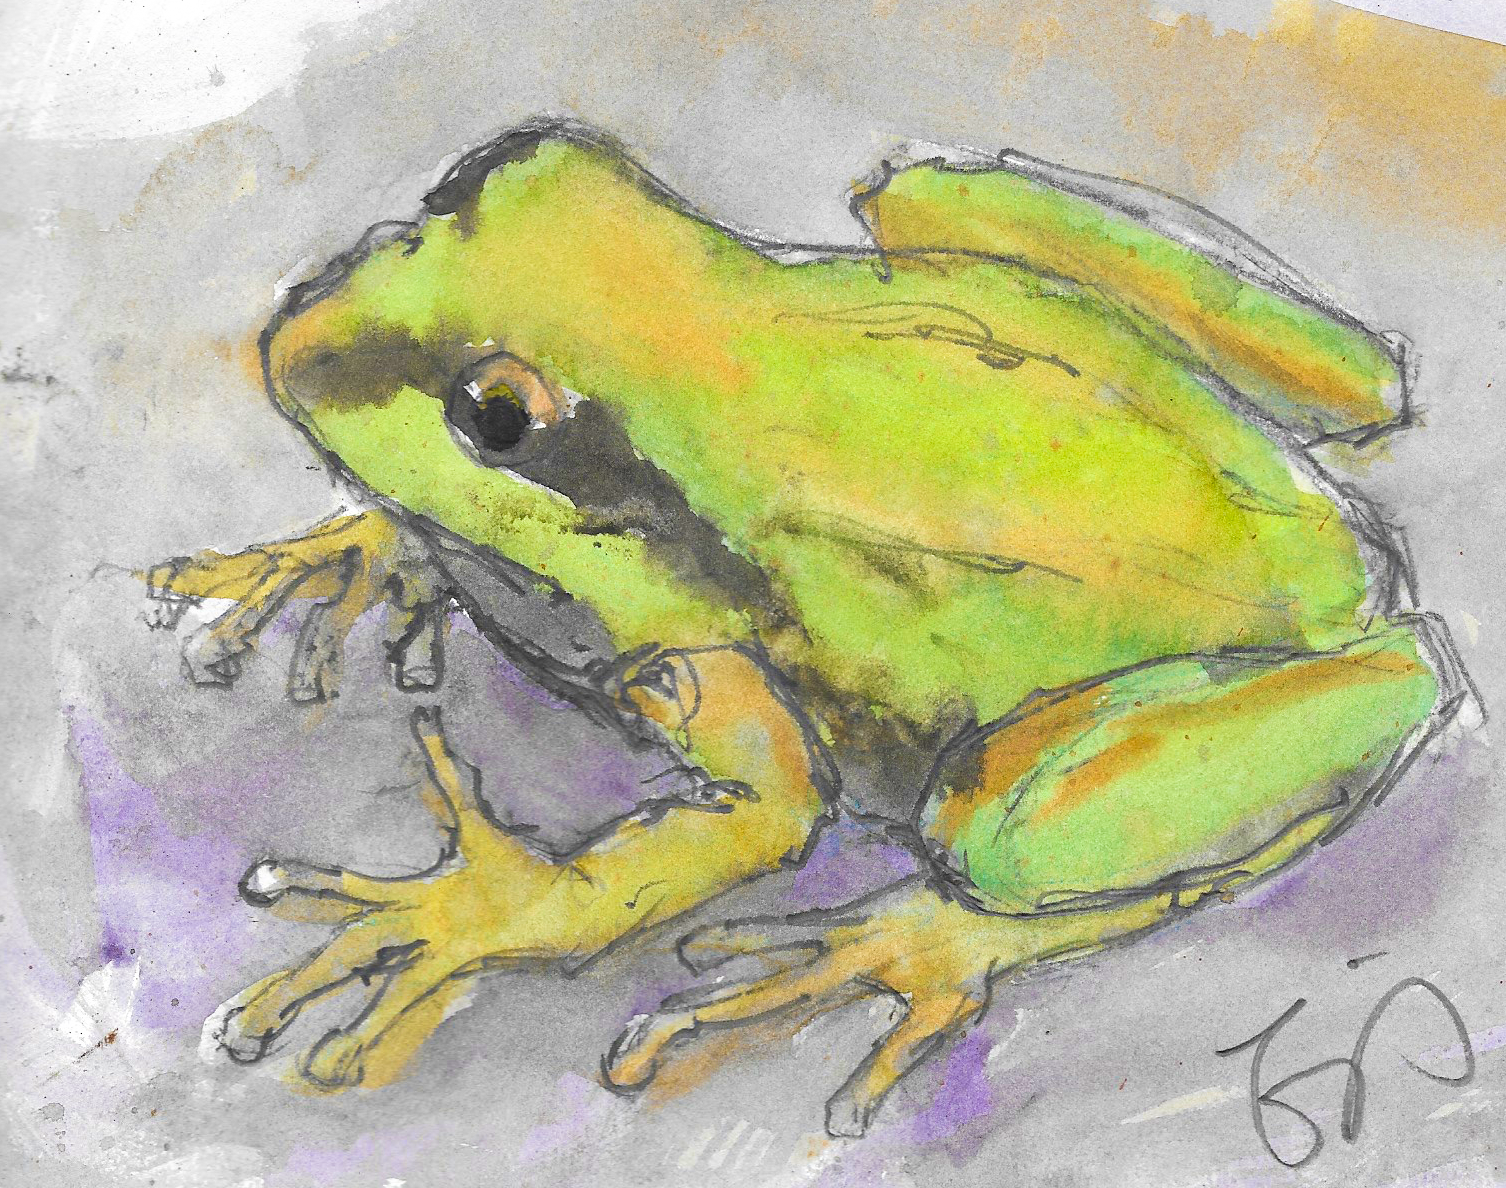 A Pacific chorus frog. They're loud and proud.